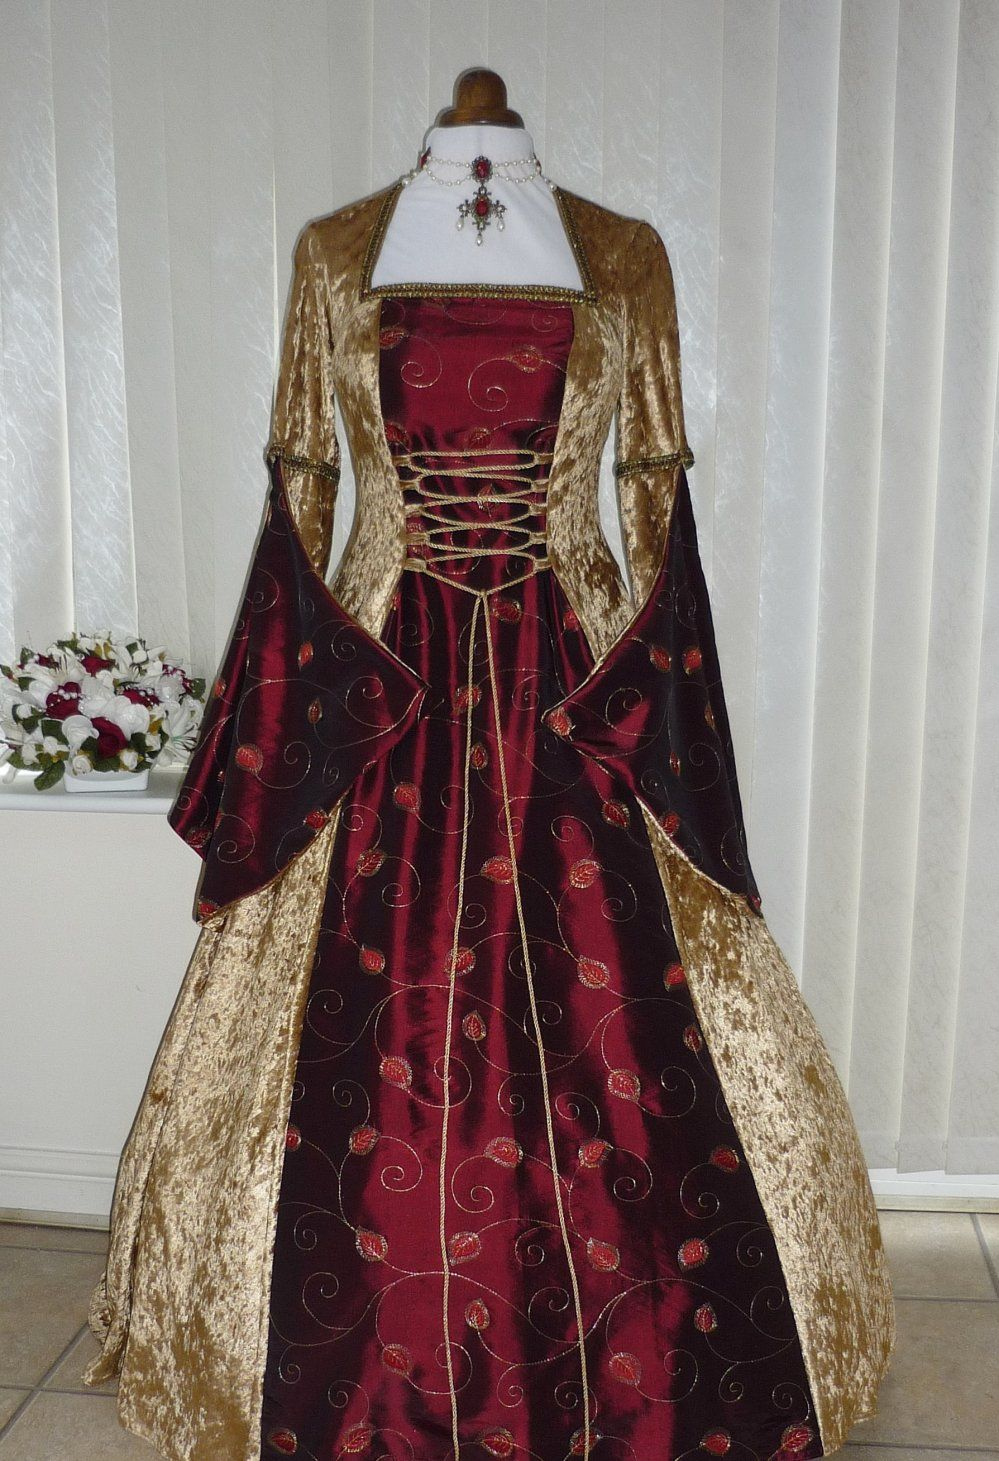 Medieval Pagan Open Sleeve Gold And Burgundy Wedding Dress - Burgundy And Gold Wedding Dress